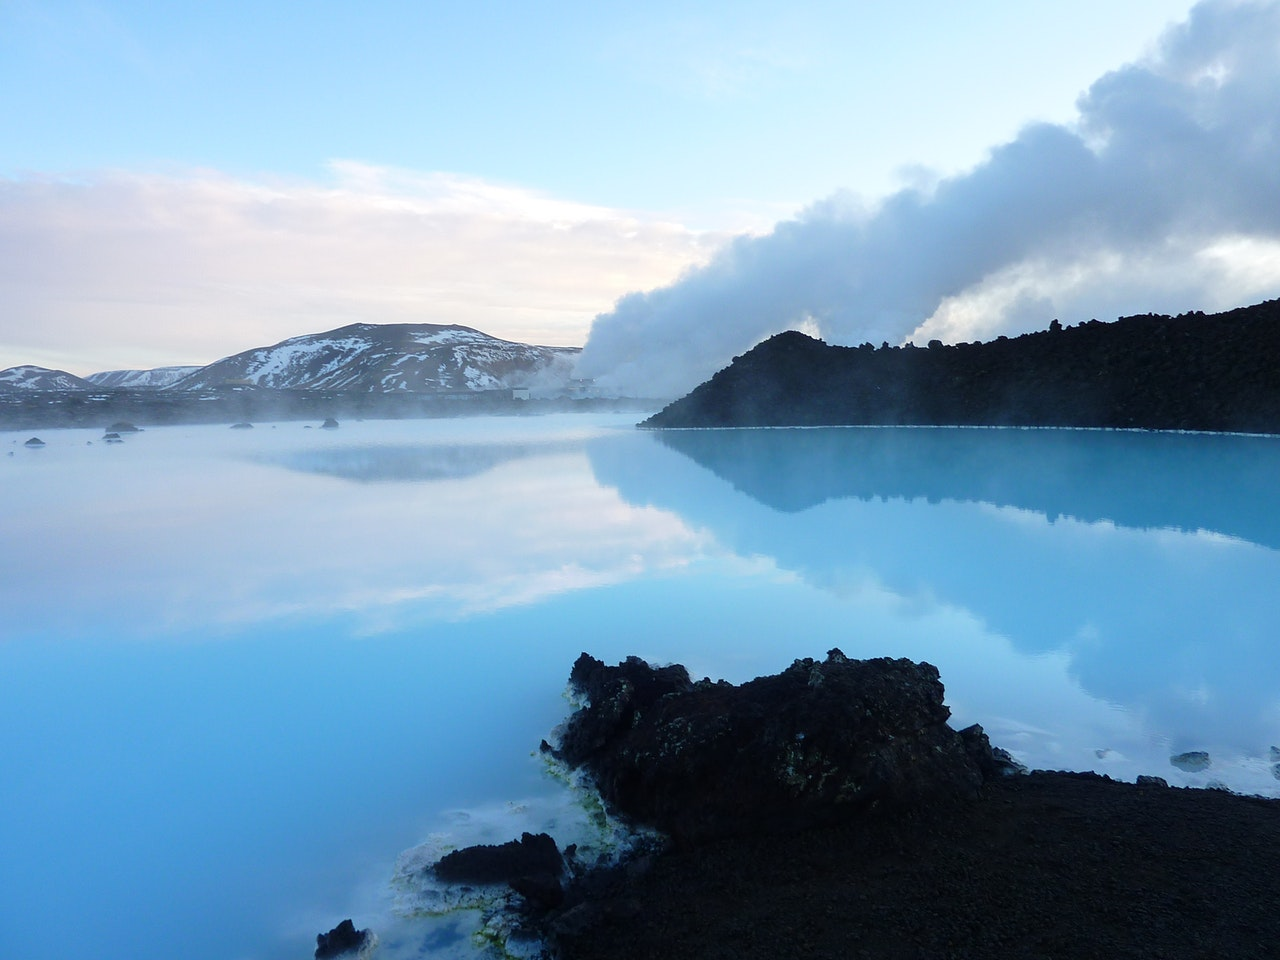 women's guide to Iceland from Wanderful - image of the natural beauty